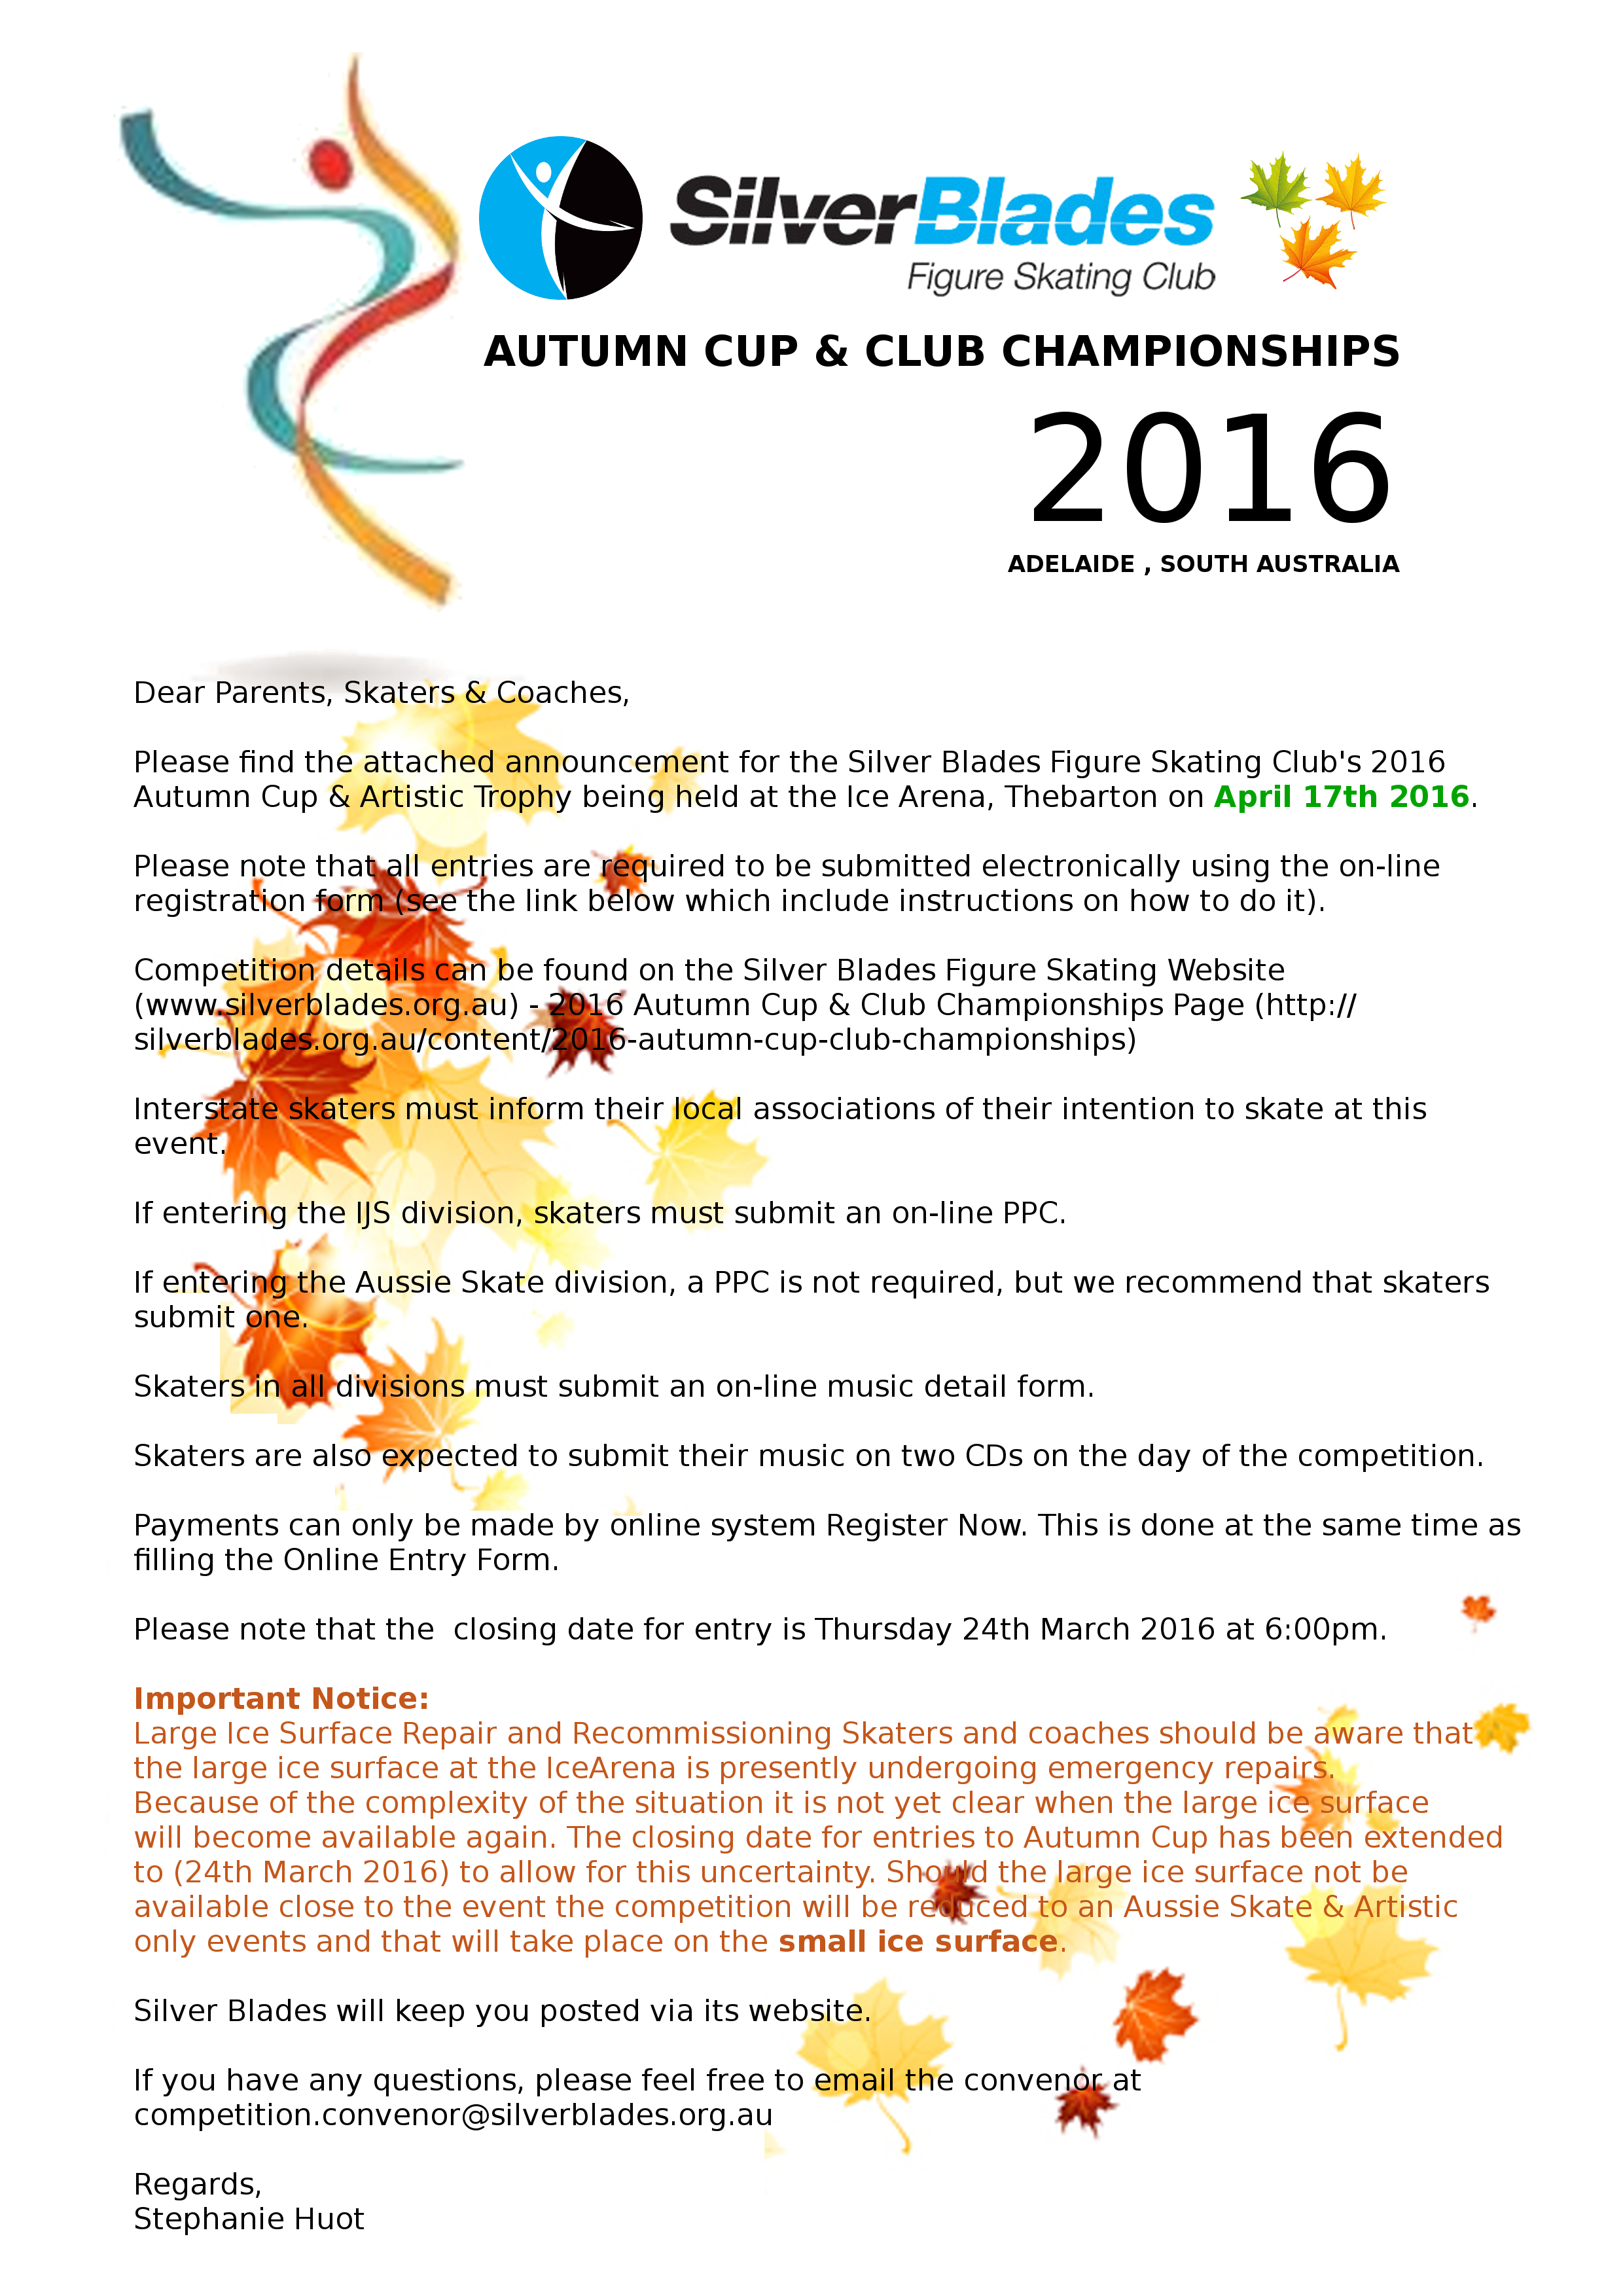 2016 Autumn Cup & Club Championships   Silver Blades Figure